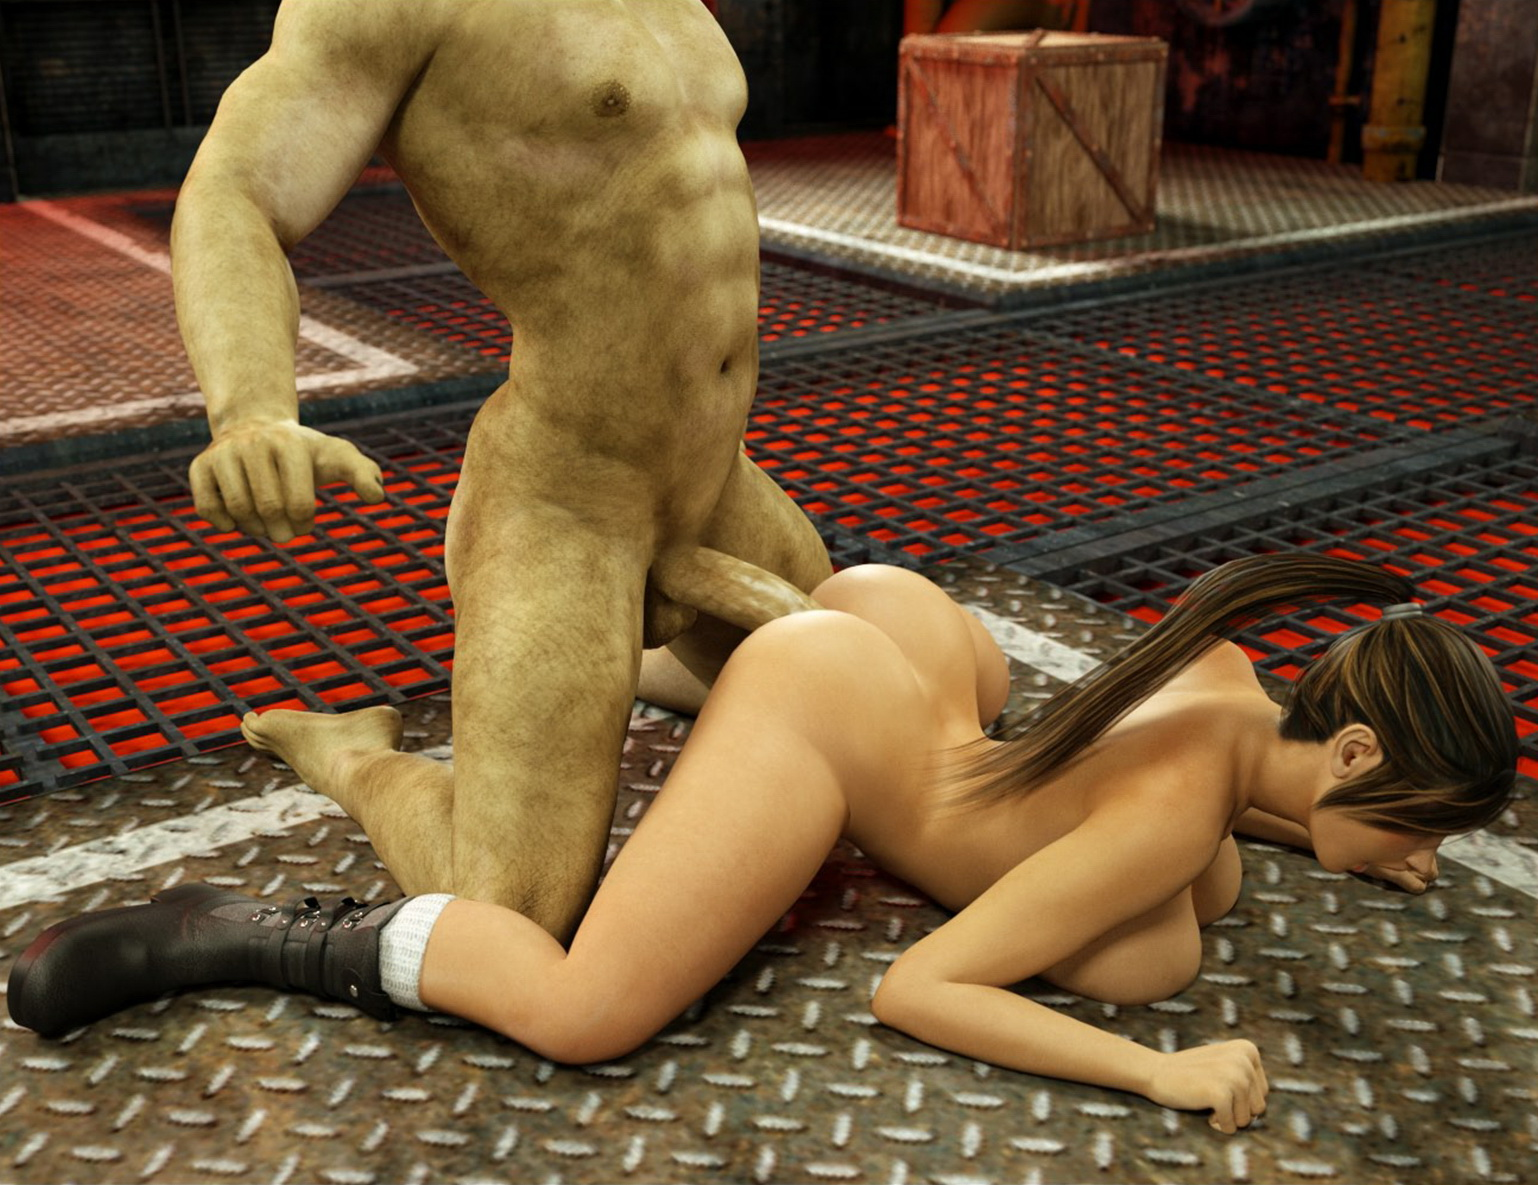 Free animated 3d monster sex videos xxx pictures